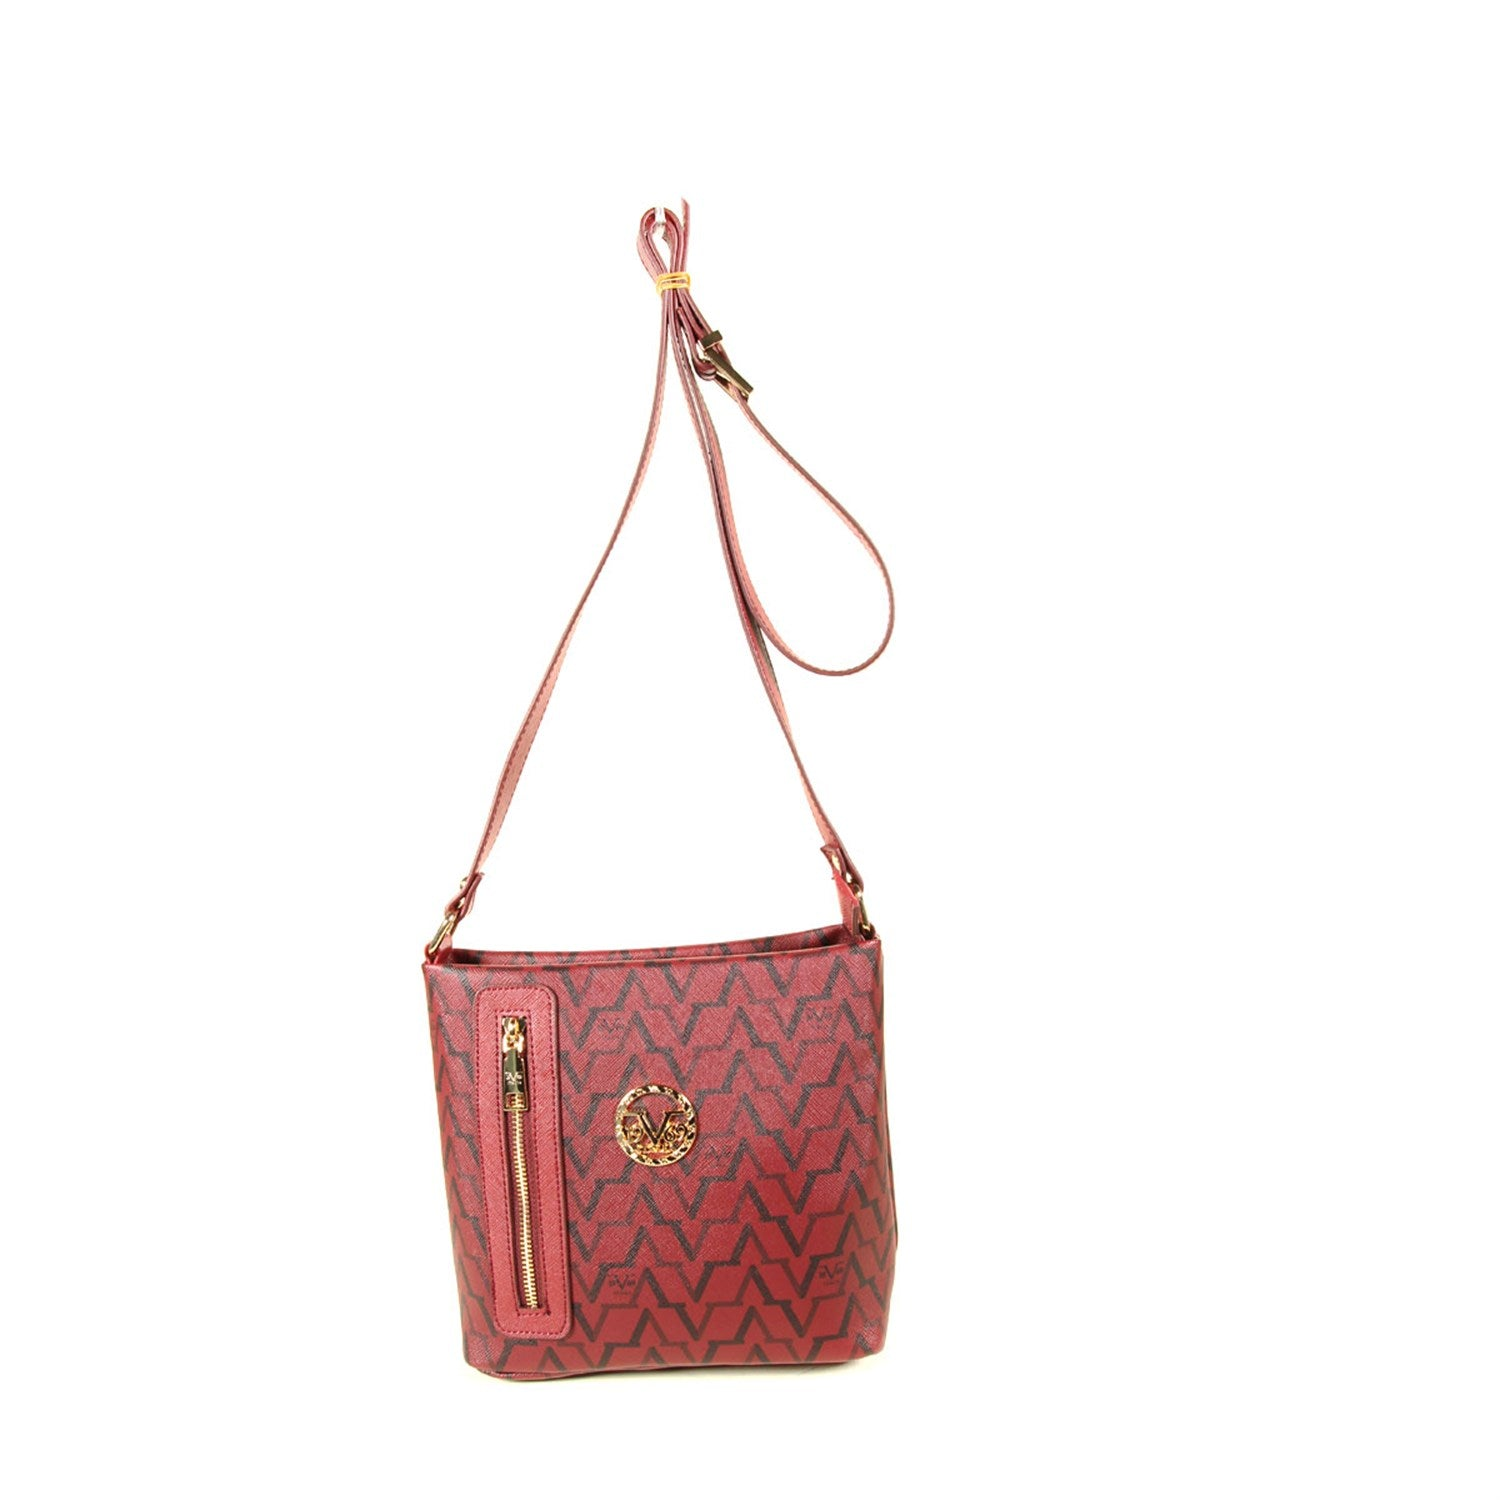 Women's Patterned Claret Red Crossbody Bag